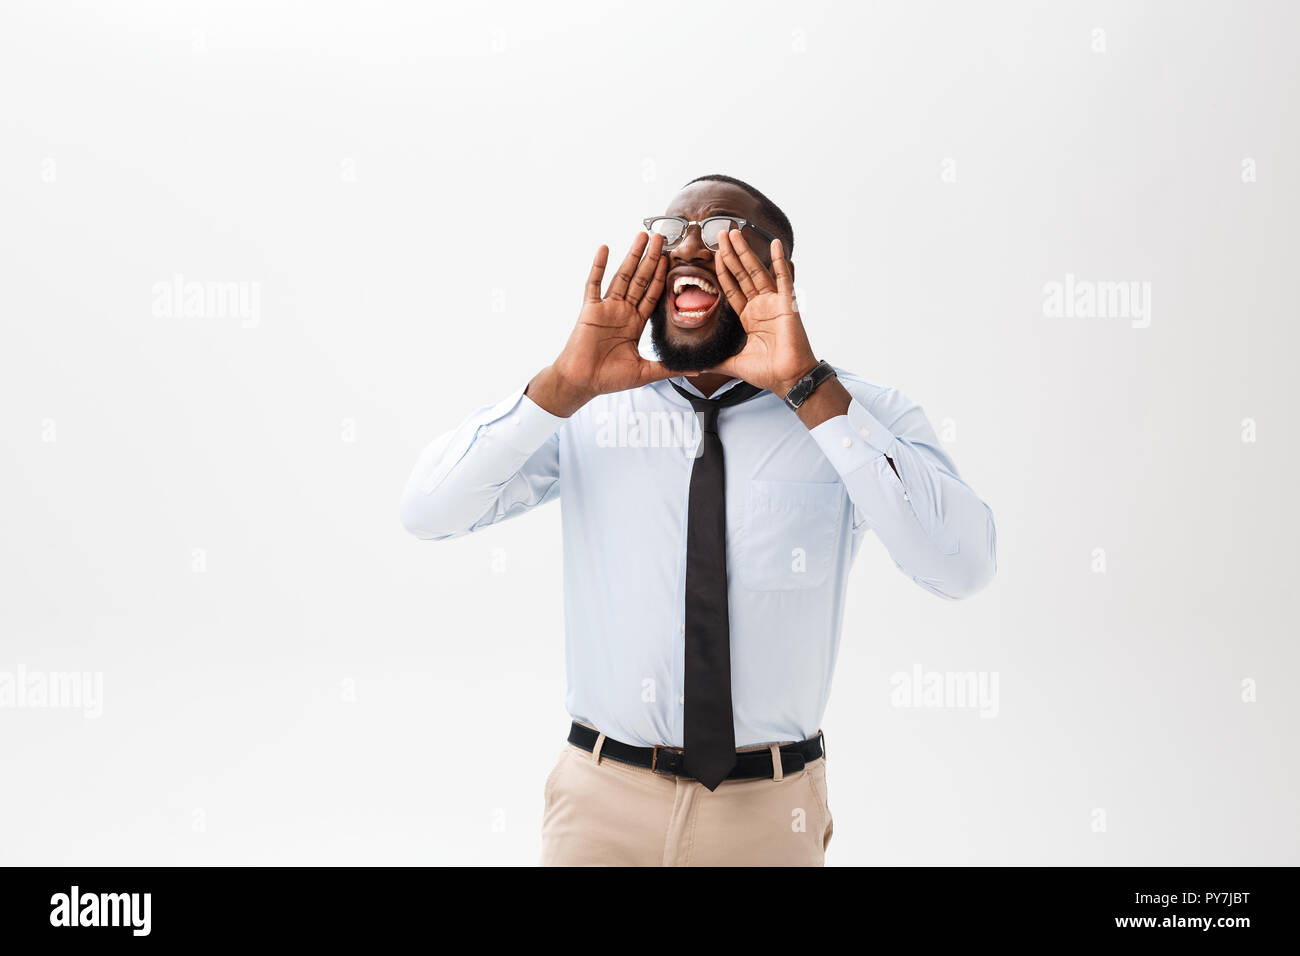 African man yelling with hand on his mouth isolated on a white background - Stock Image